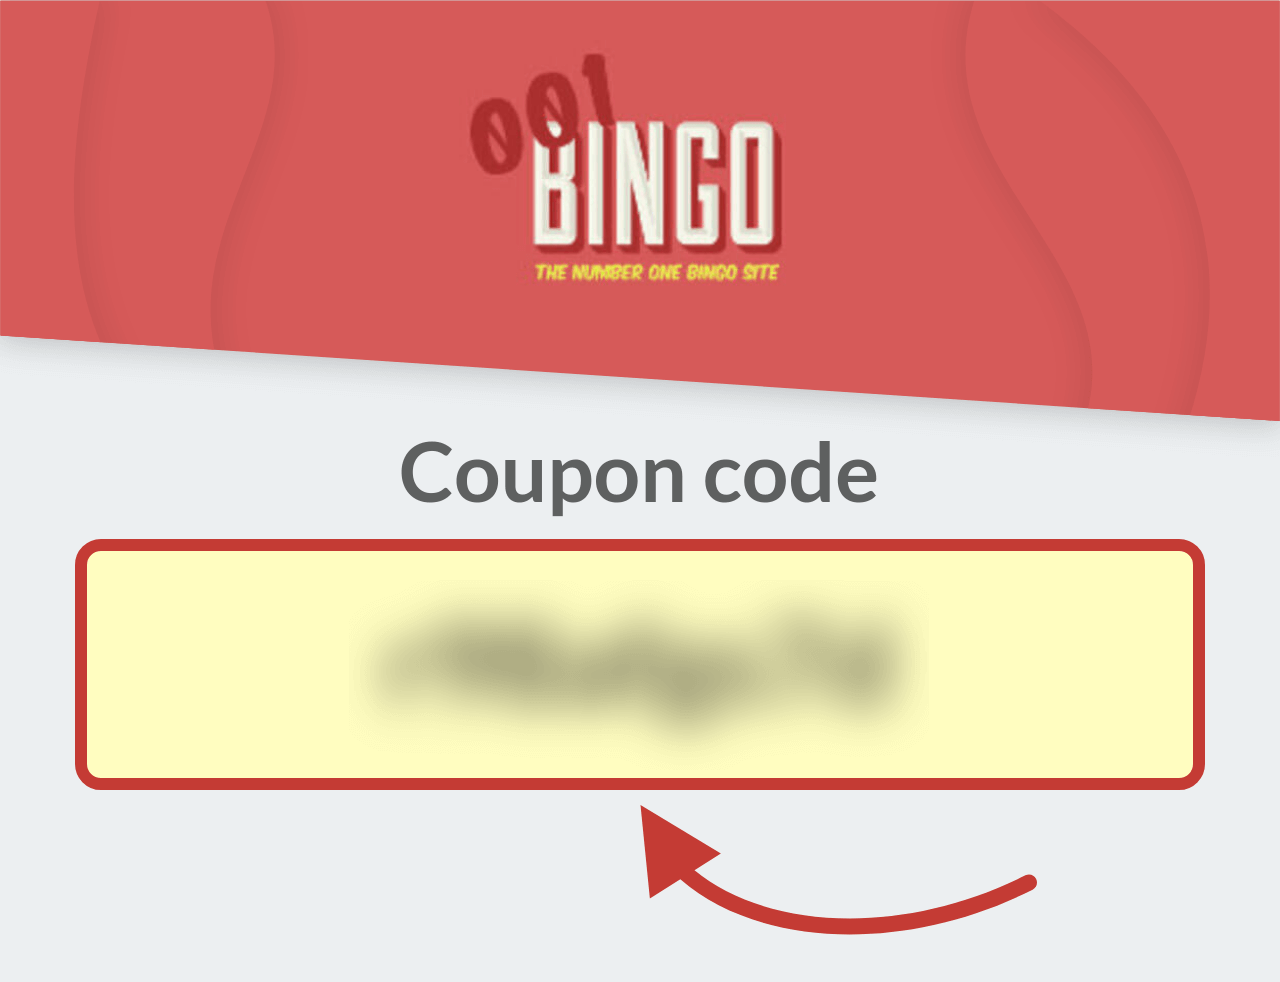 001 Bingo Coupon Code